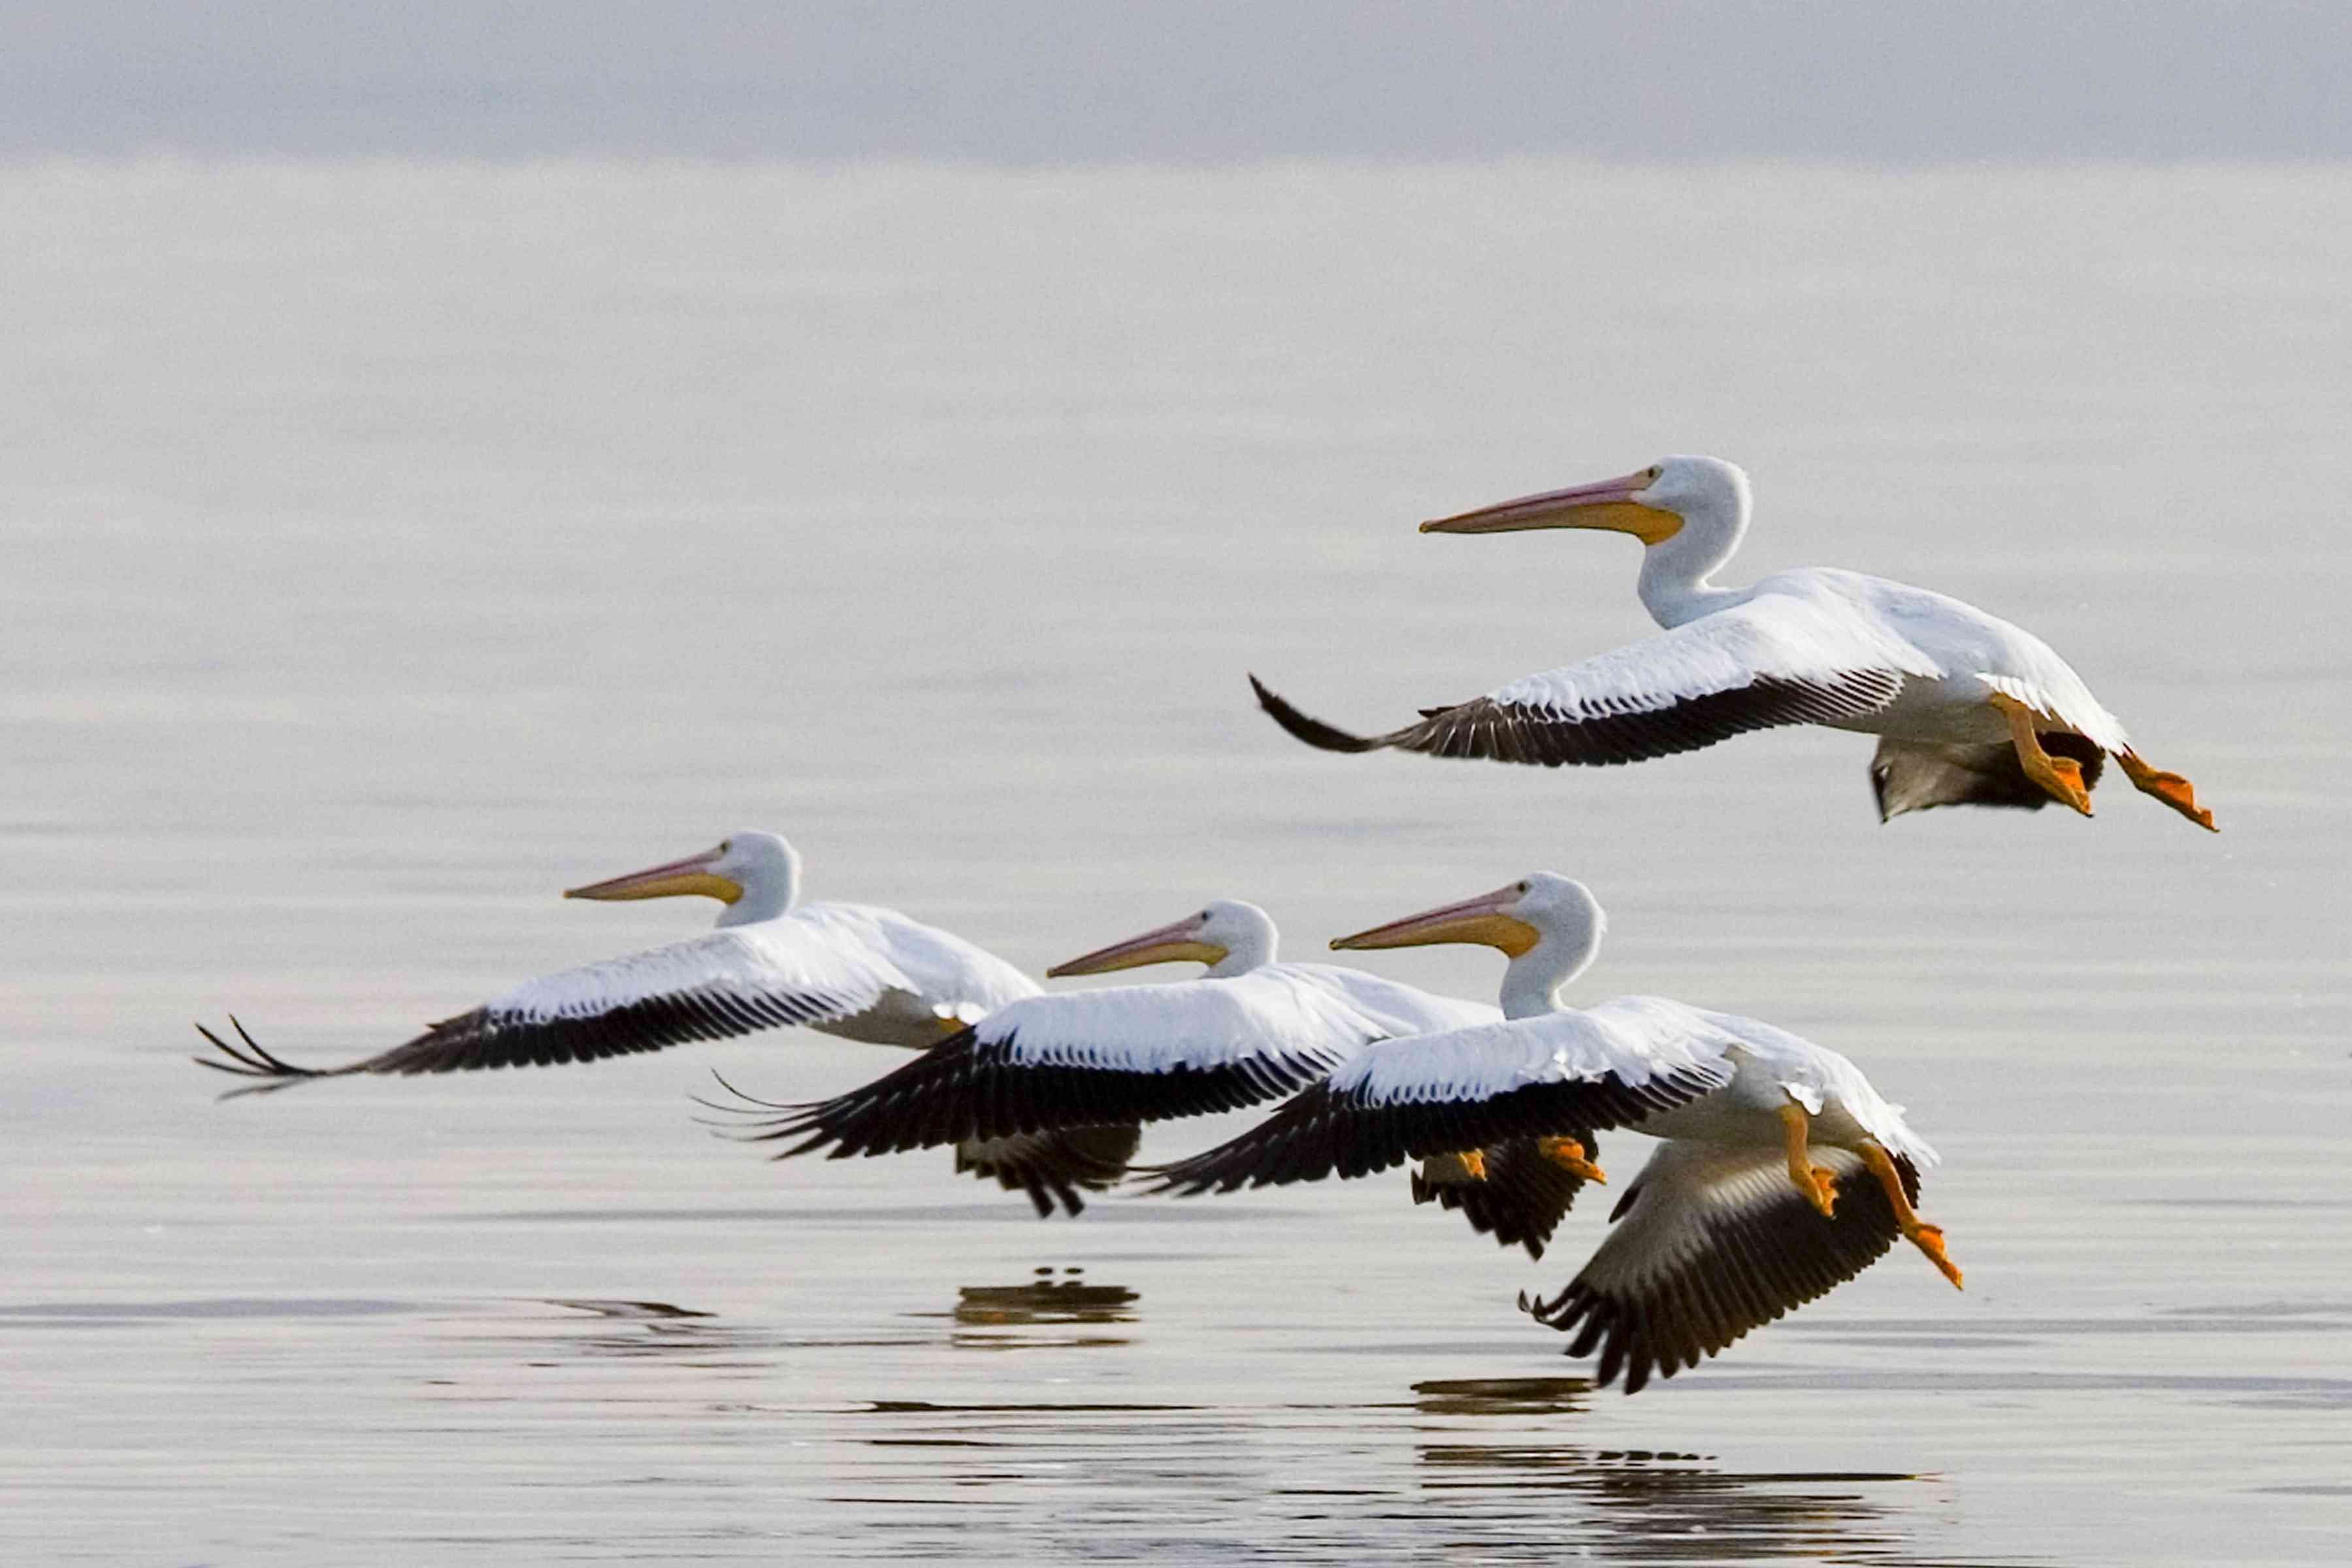 four white pelicans with orange beaks and webbed feet in flight right above the flat water of the Salton Sea